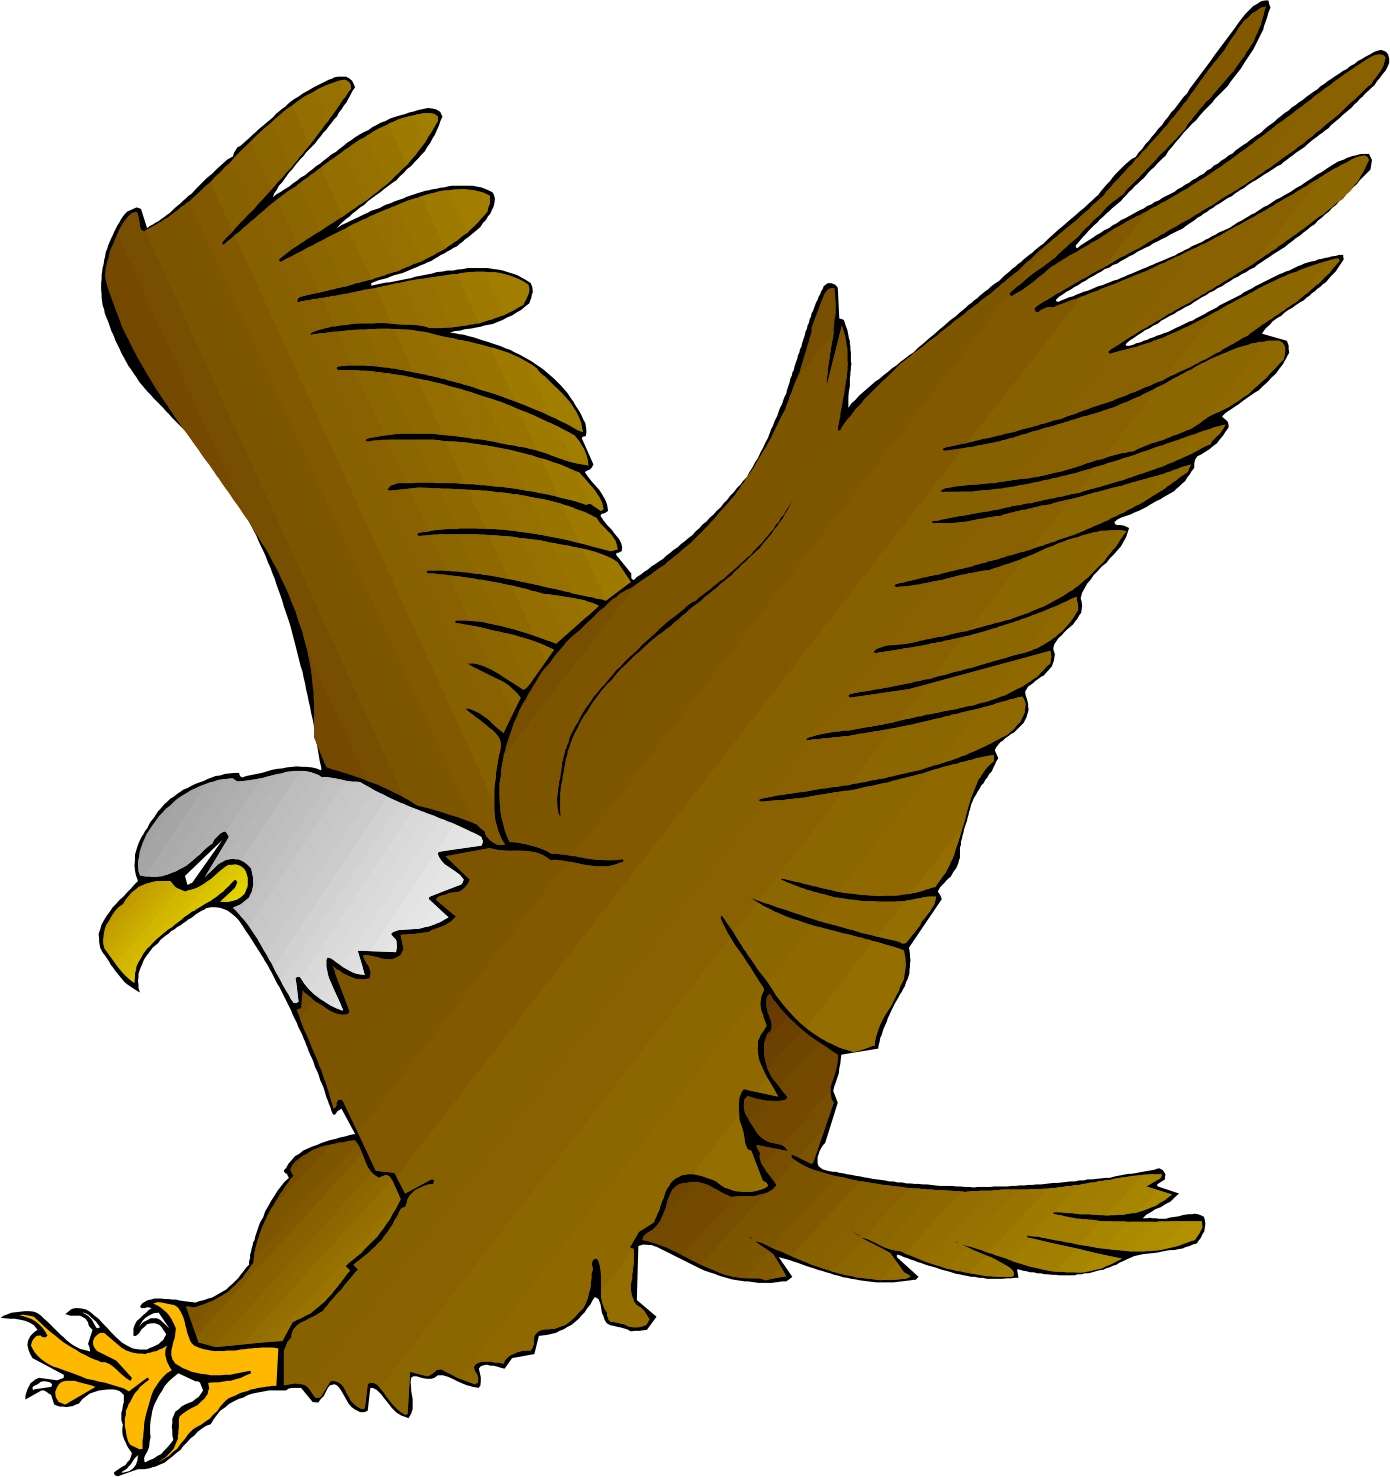 flying eagle clipart at getdrawings com free for personal use rh getdrawings com Eagle Clip Art Eagle Clip Art